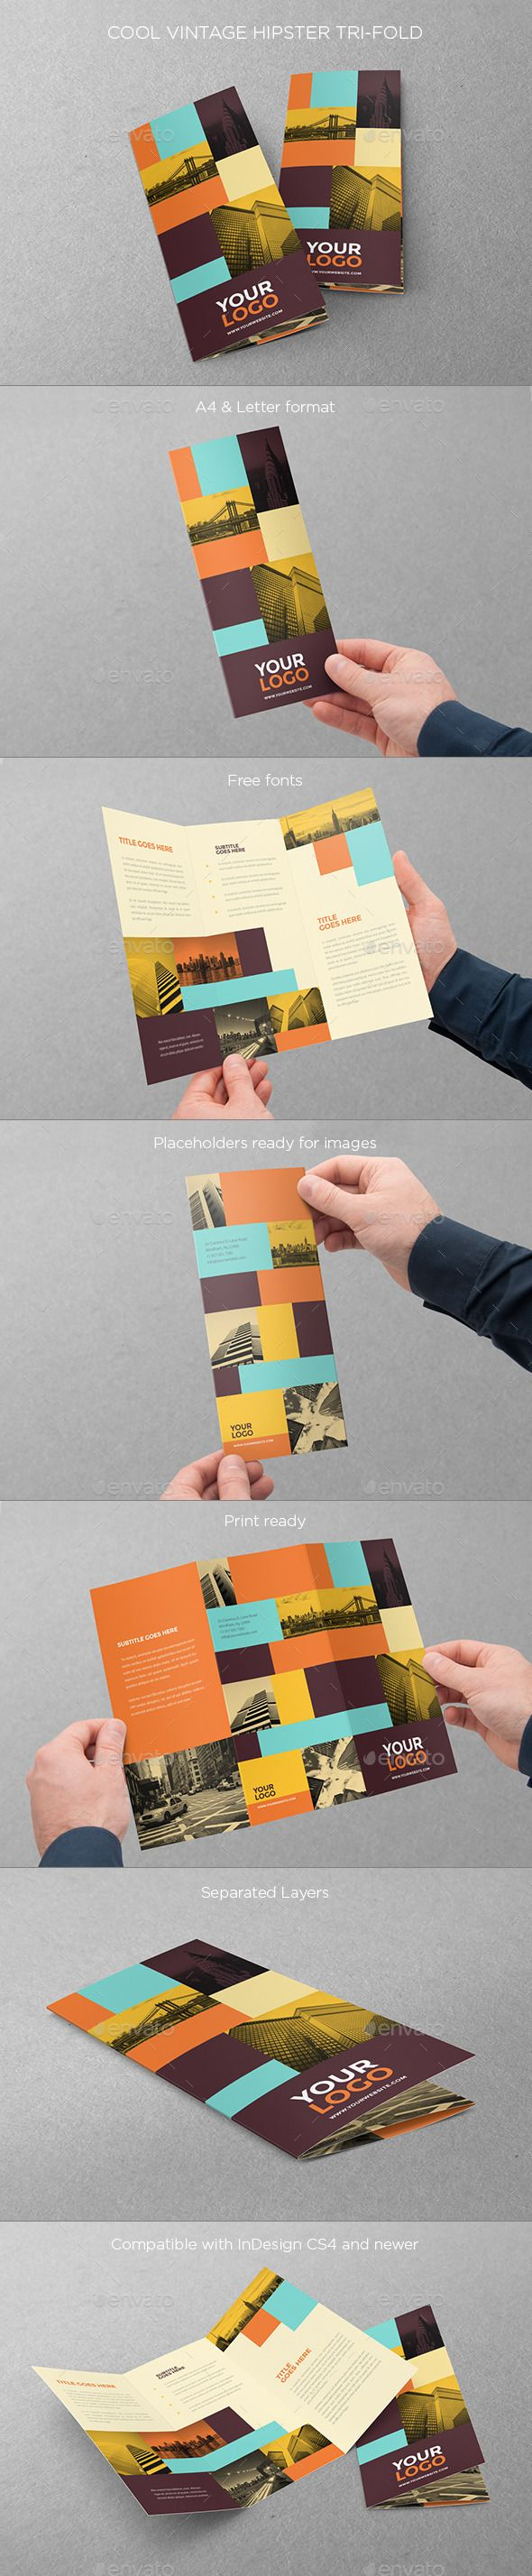 Cool Vintage Hipster Trifold (CS4, 8.5x11, a4, brochure, business, clean, colorful, cool, flexible, hipster, letter, minimal, modern, print, professional, retro, simple, trifold, vintage)